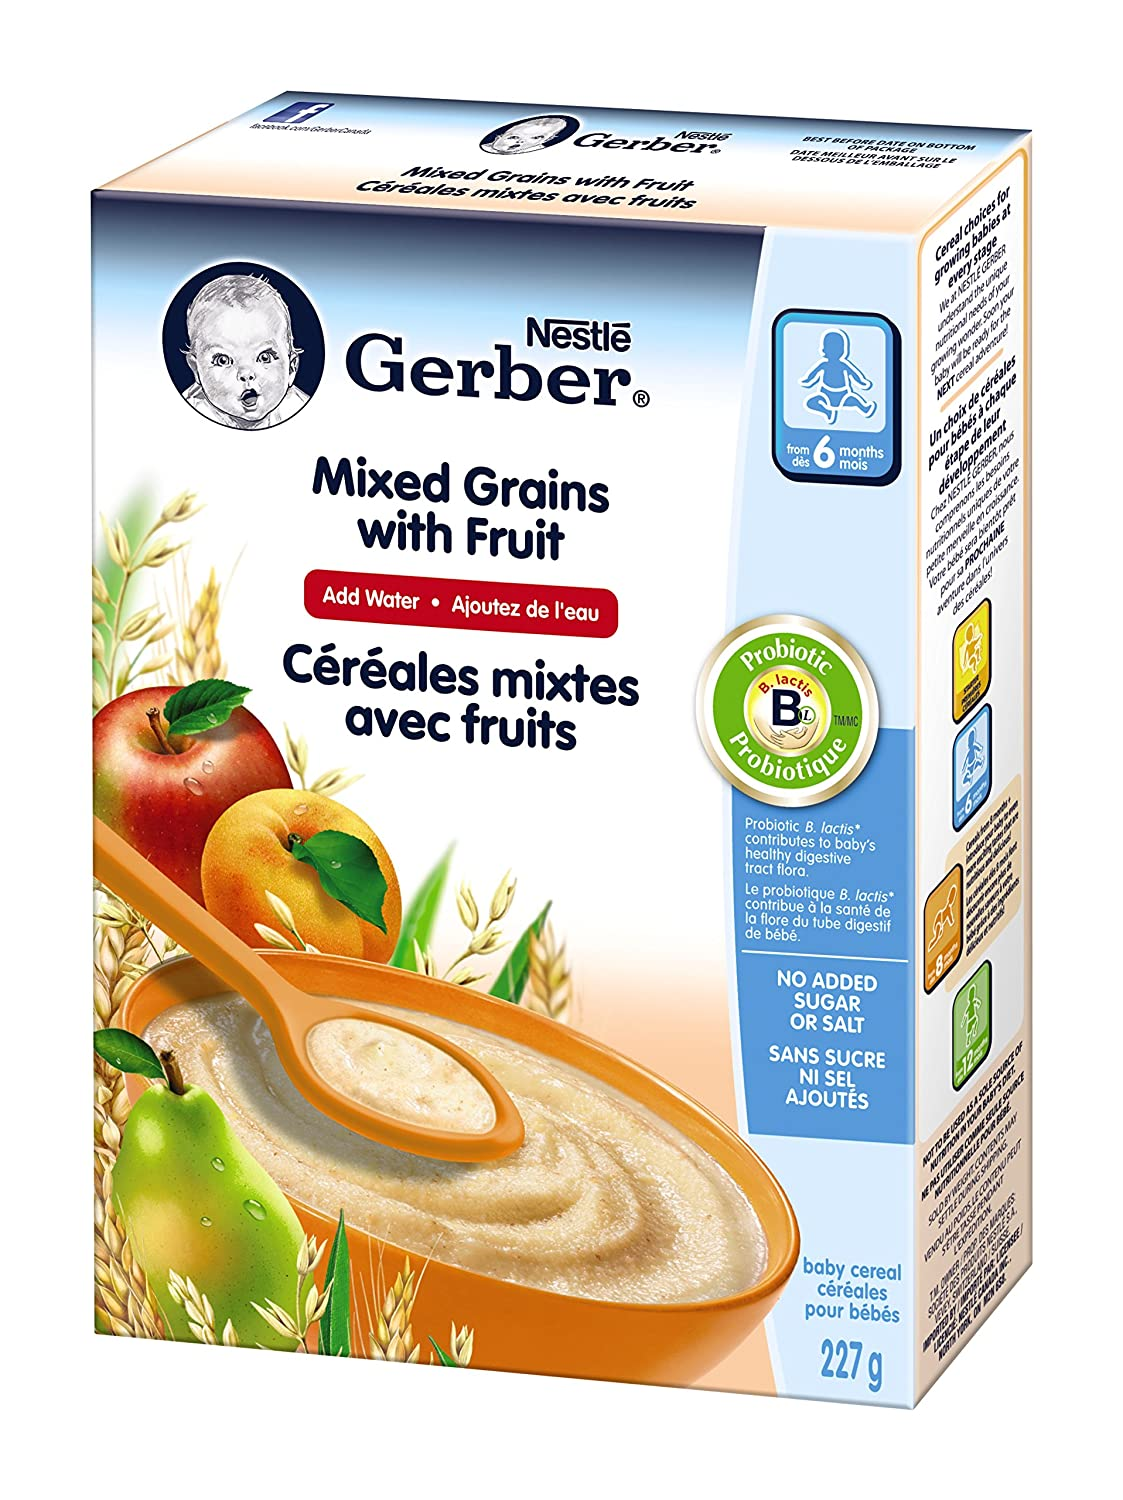 Nestlé Gerber Rice with Carrot & Pumpkin Cereal 227g,6 Pack Nestlé Canada Inc. 12294183